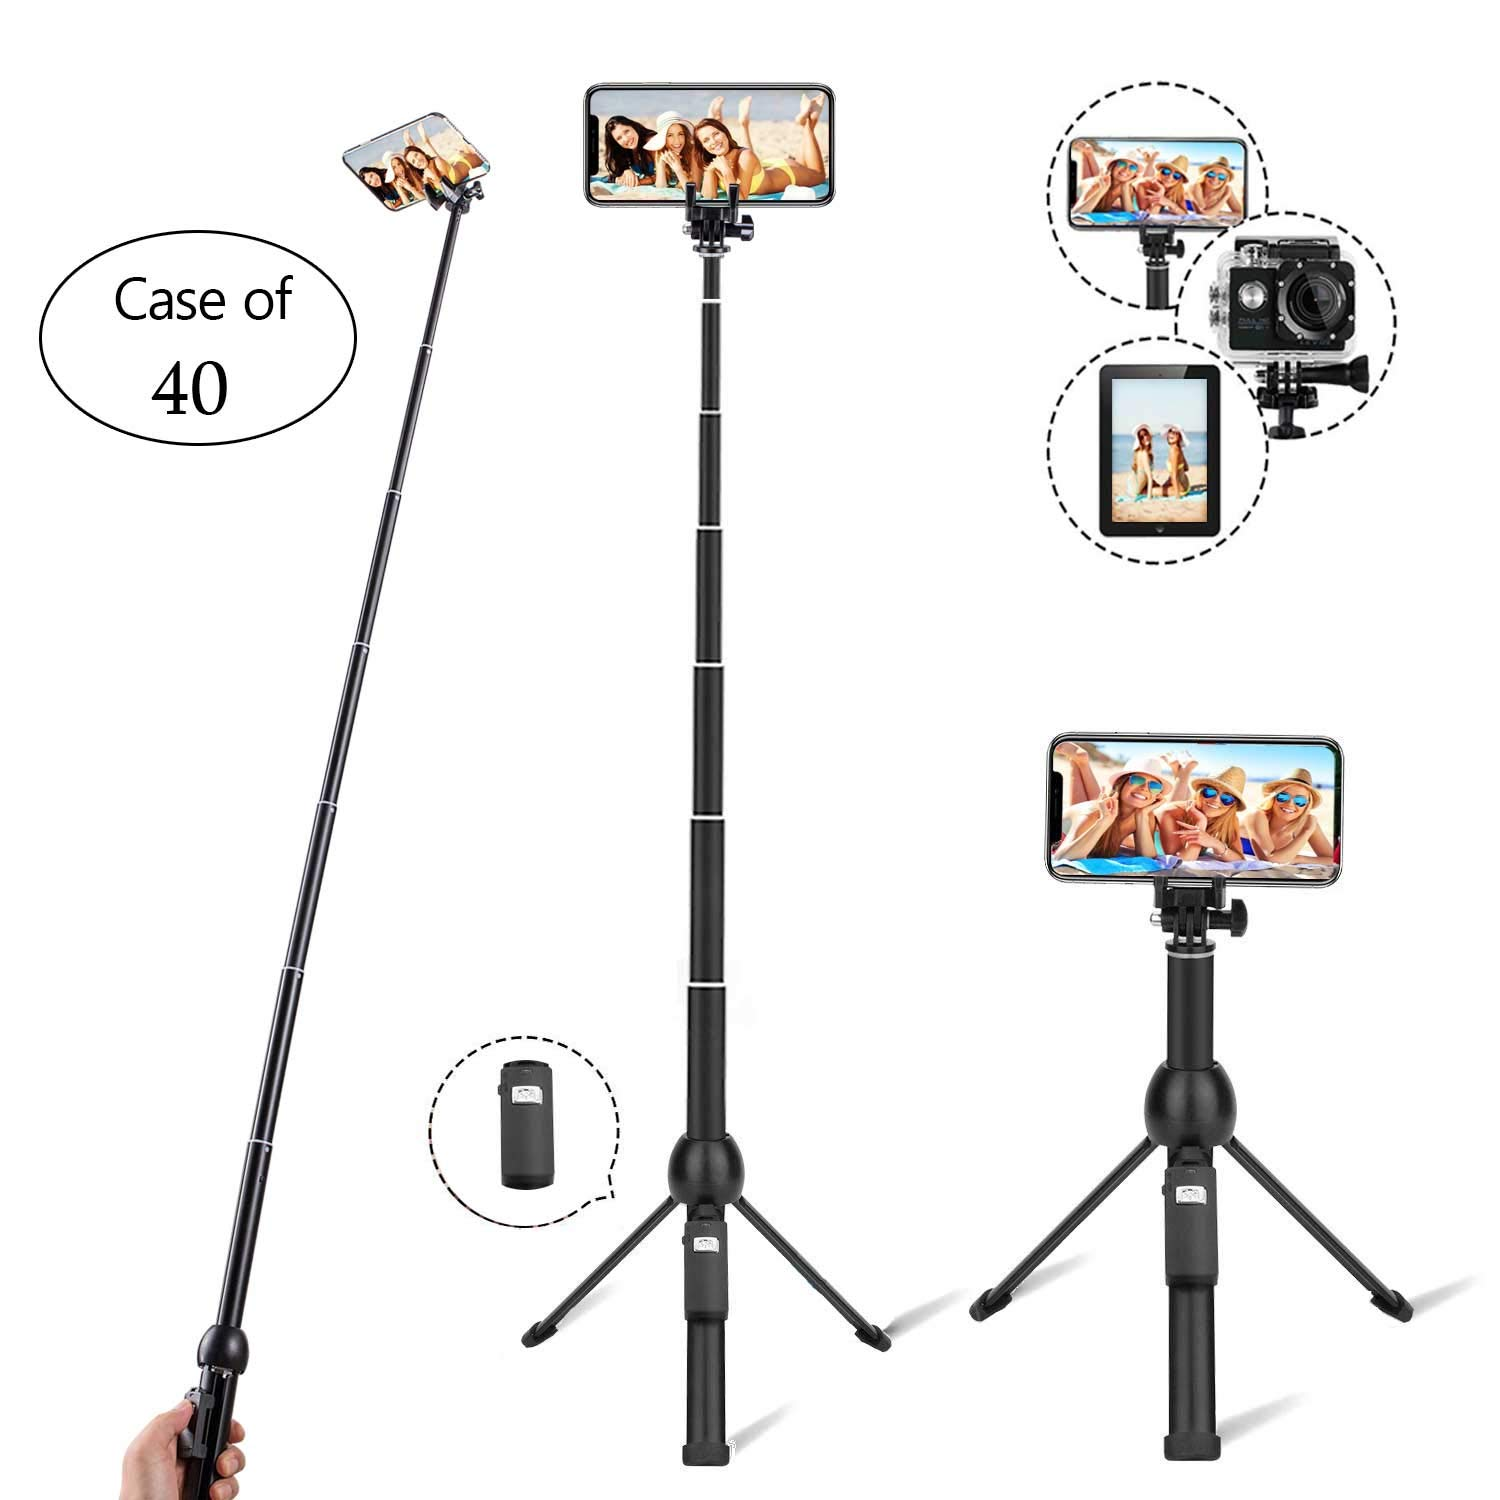 Case of 40, Eocean Selfie Stick, 45 Inch Extendable Selfie Stick with Wireless Remote, Compatible with iPhone/Galaxy Note 9/S9/S9 Plus/Google/Huawei/Xiaomi